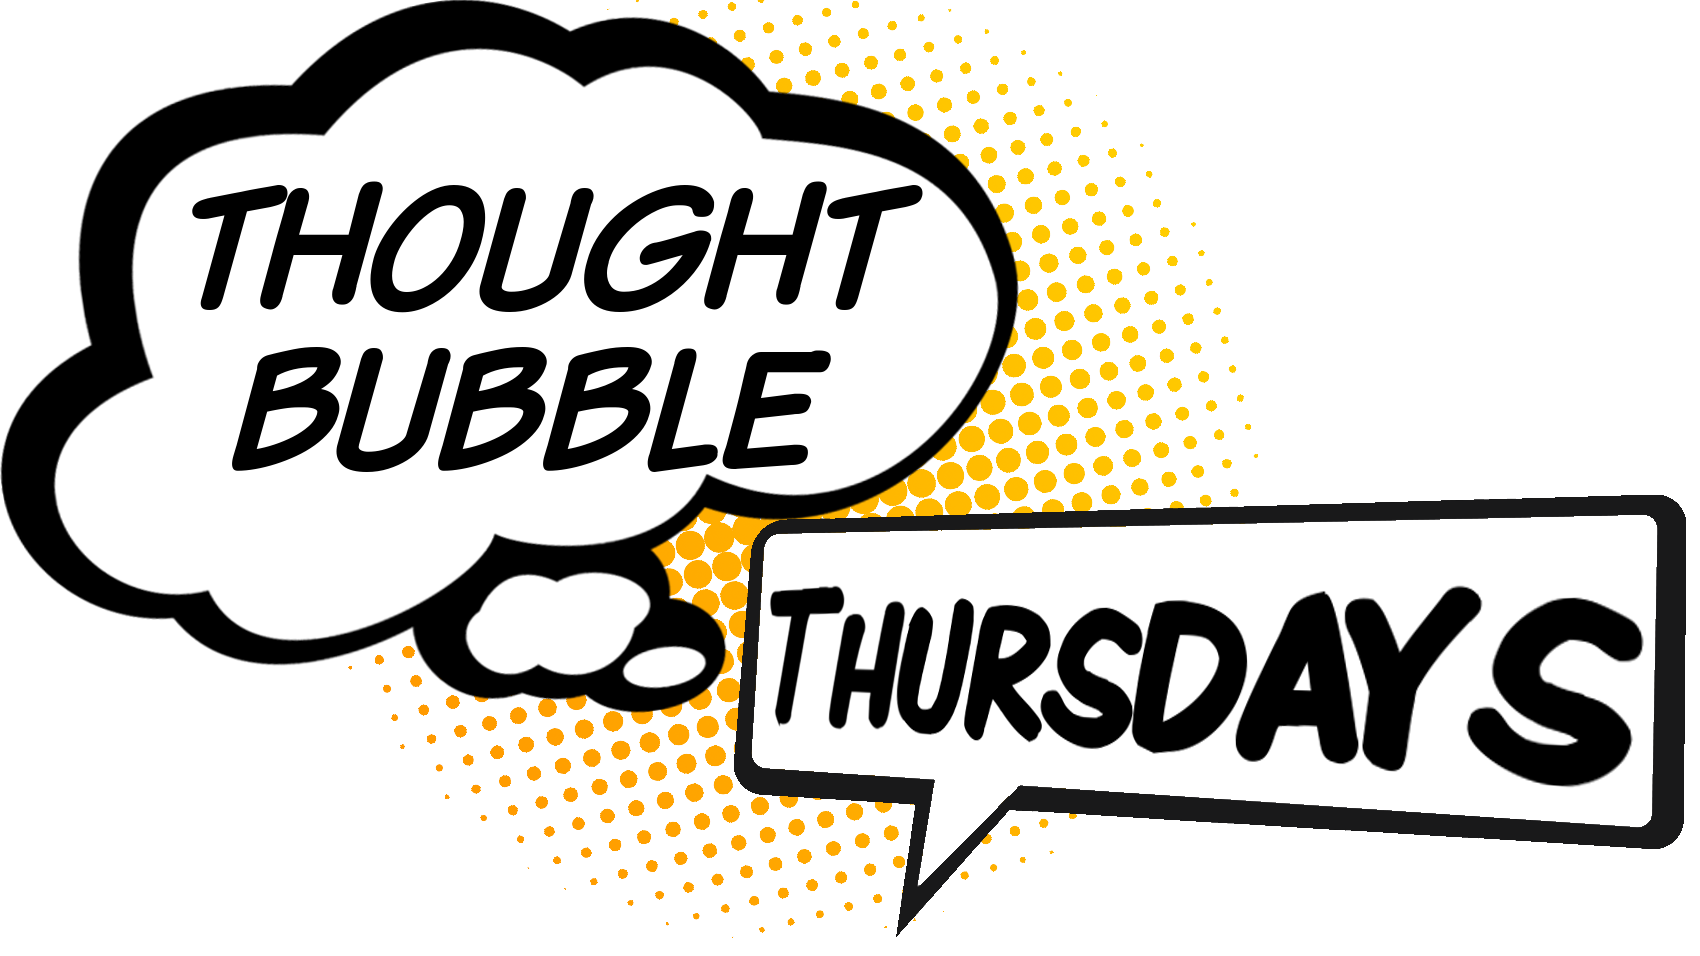 Lightning clipart comic book. Thought bubble thursdays nobody